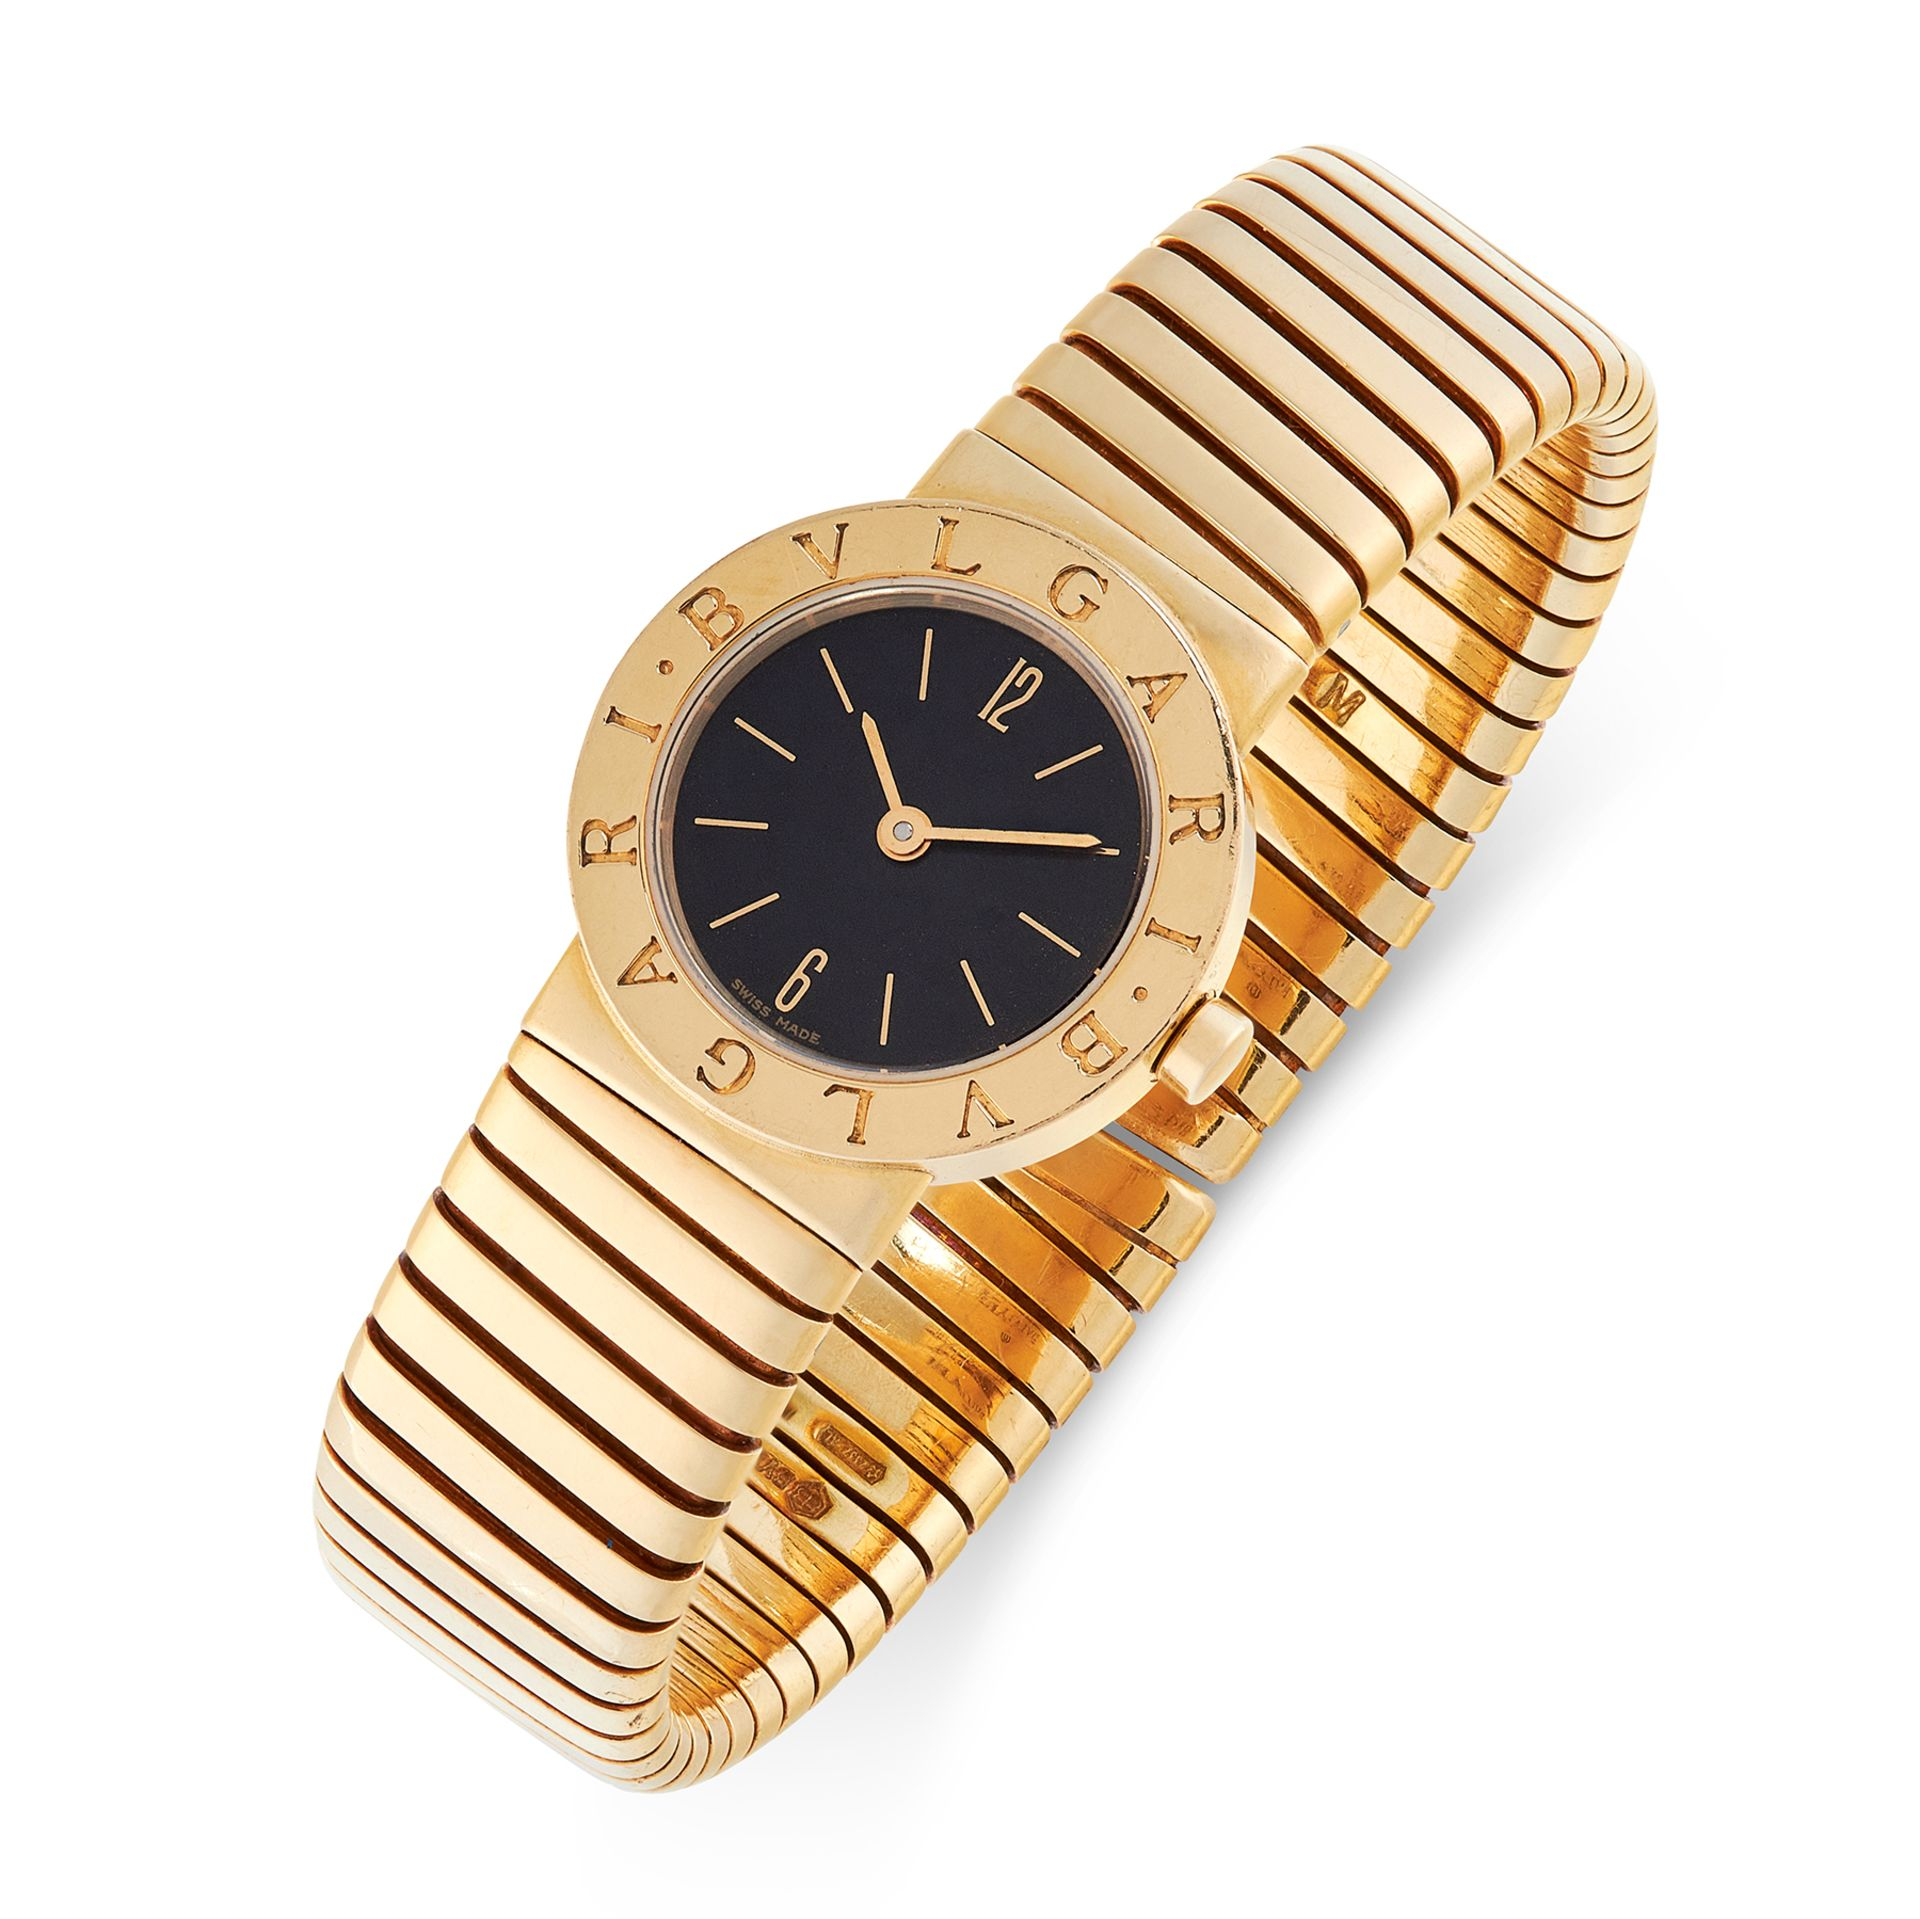 Los 111 - A GOLD TUBOGAS WRIST WATCH, BULGARI in 18ct yellow gold, set with a black face, signed Bulgari,